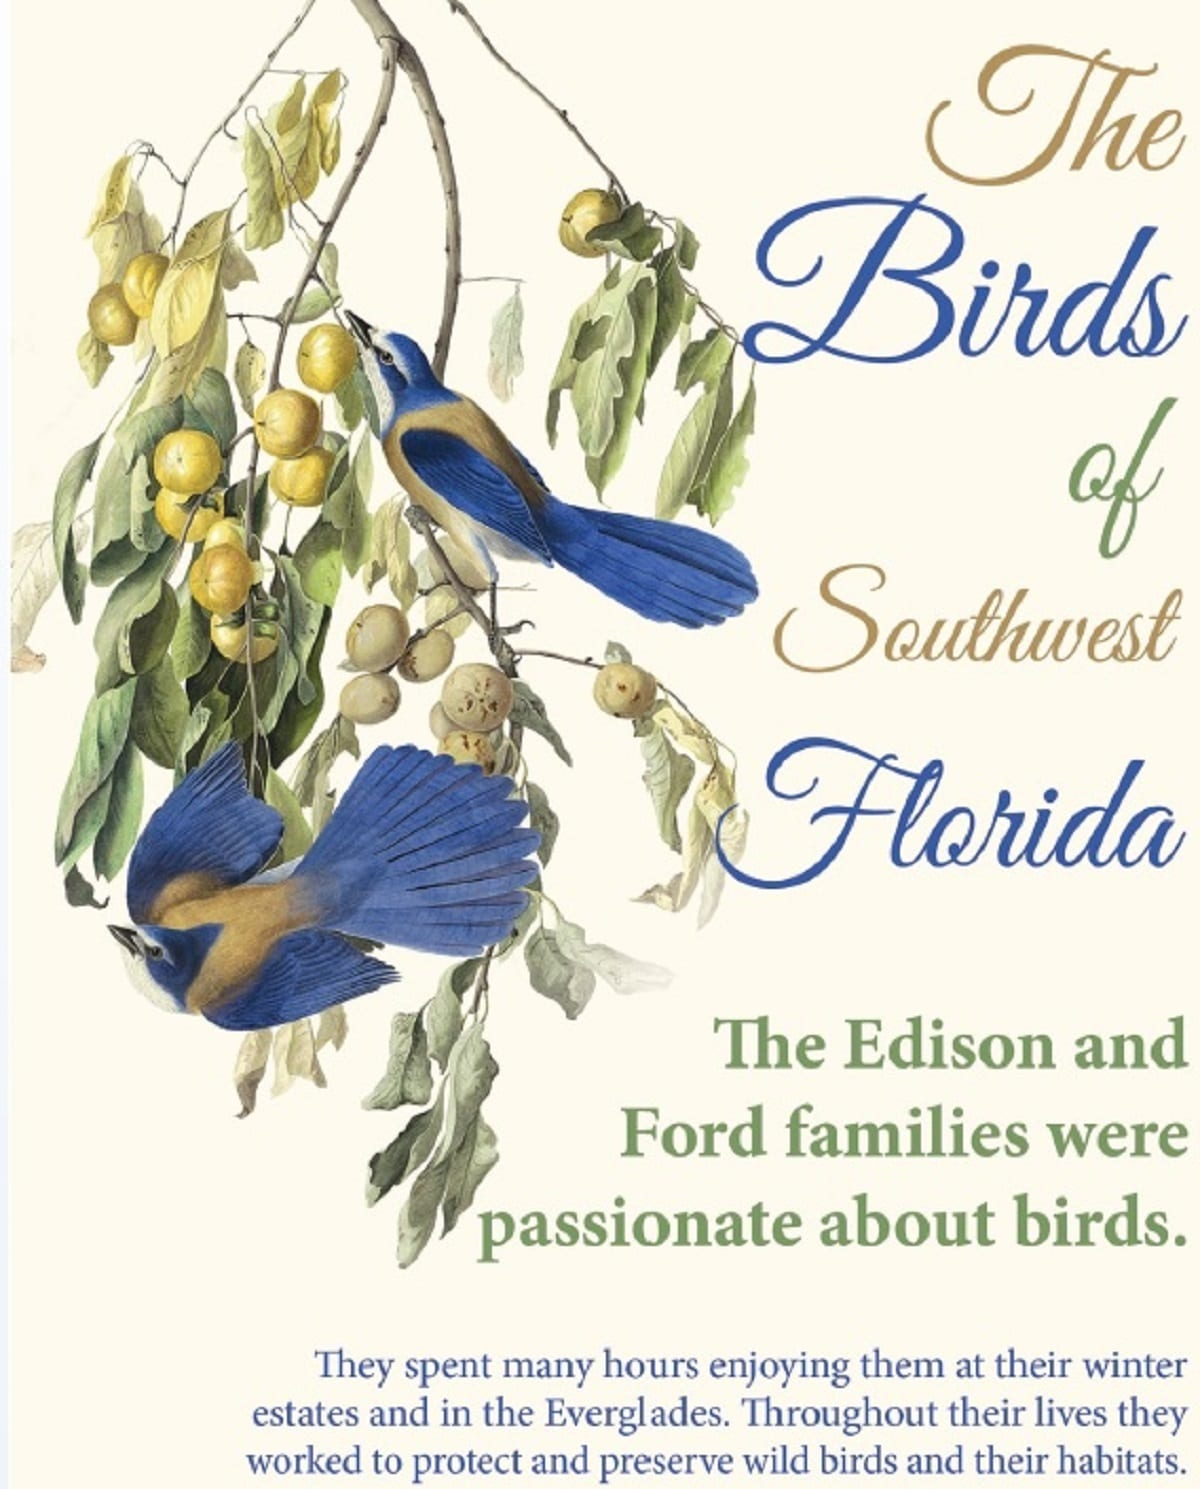 Graphic for The Birds of Southwest Florida